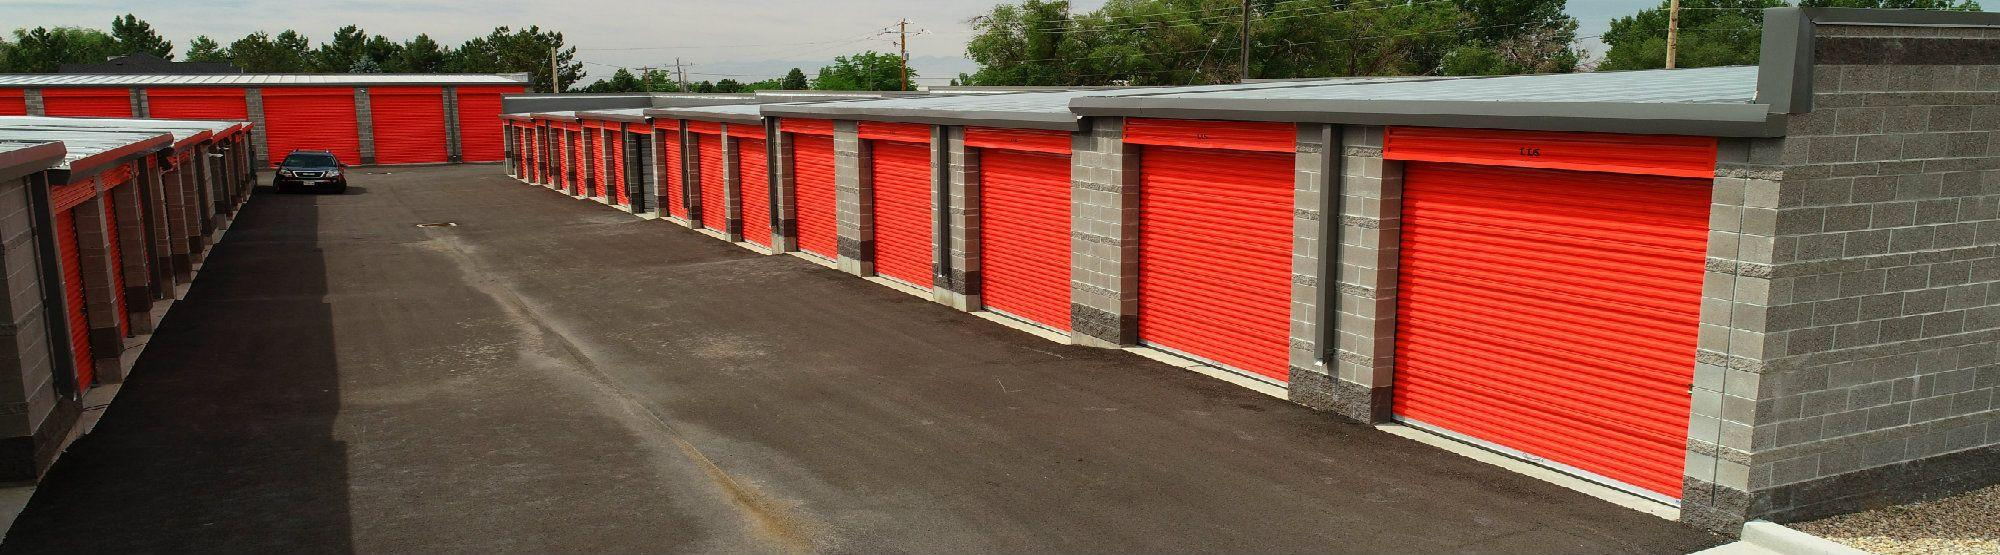 Drive Up Storage Units at Wildcat Storage